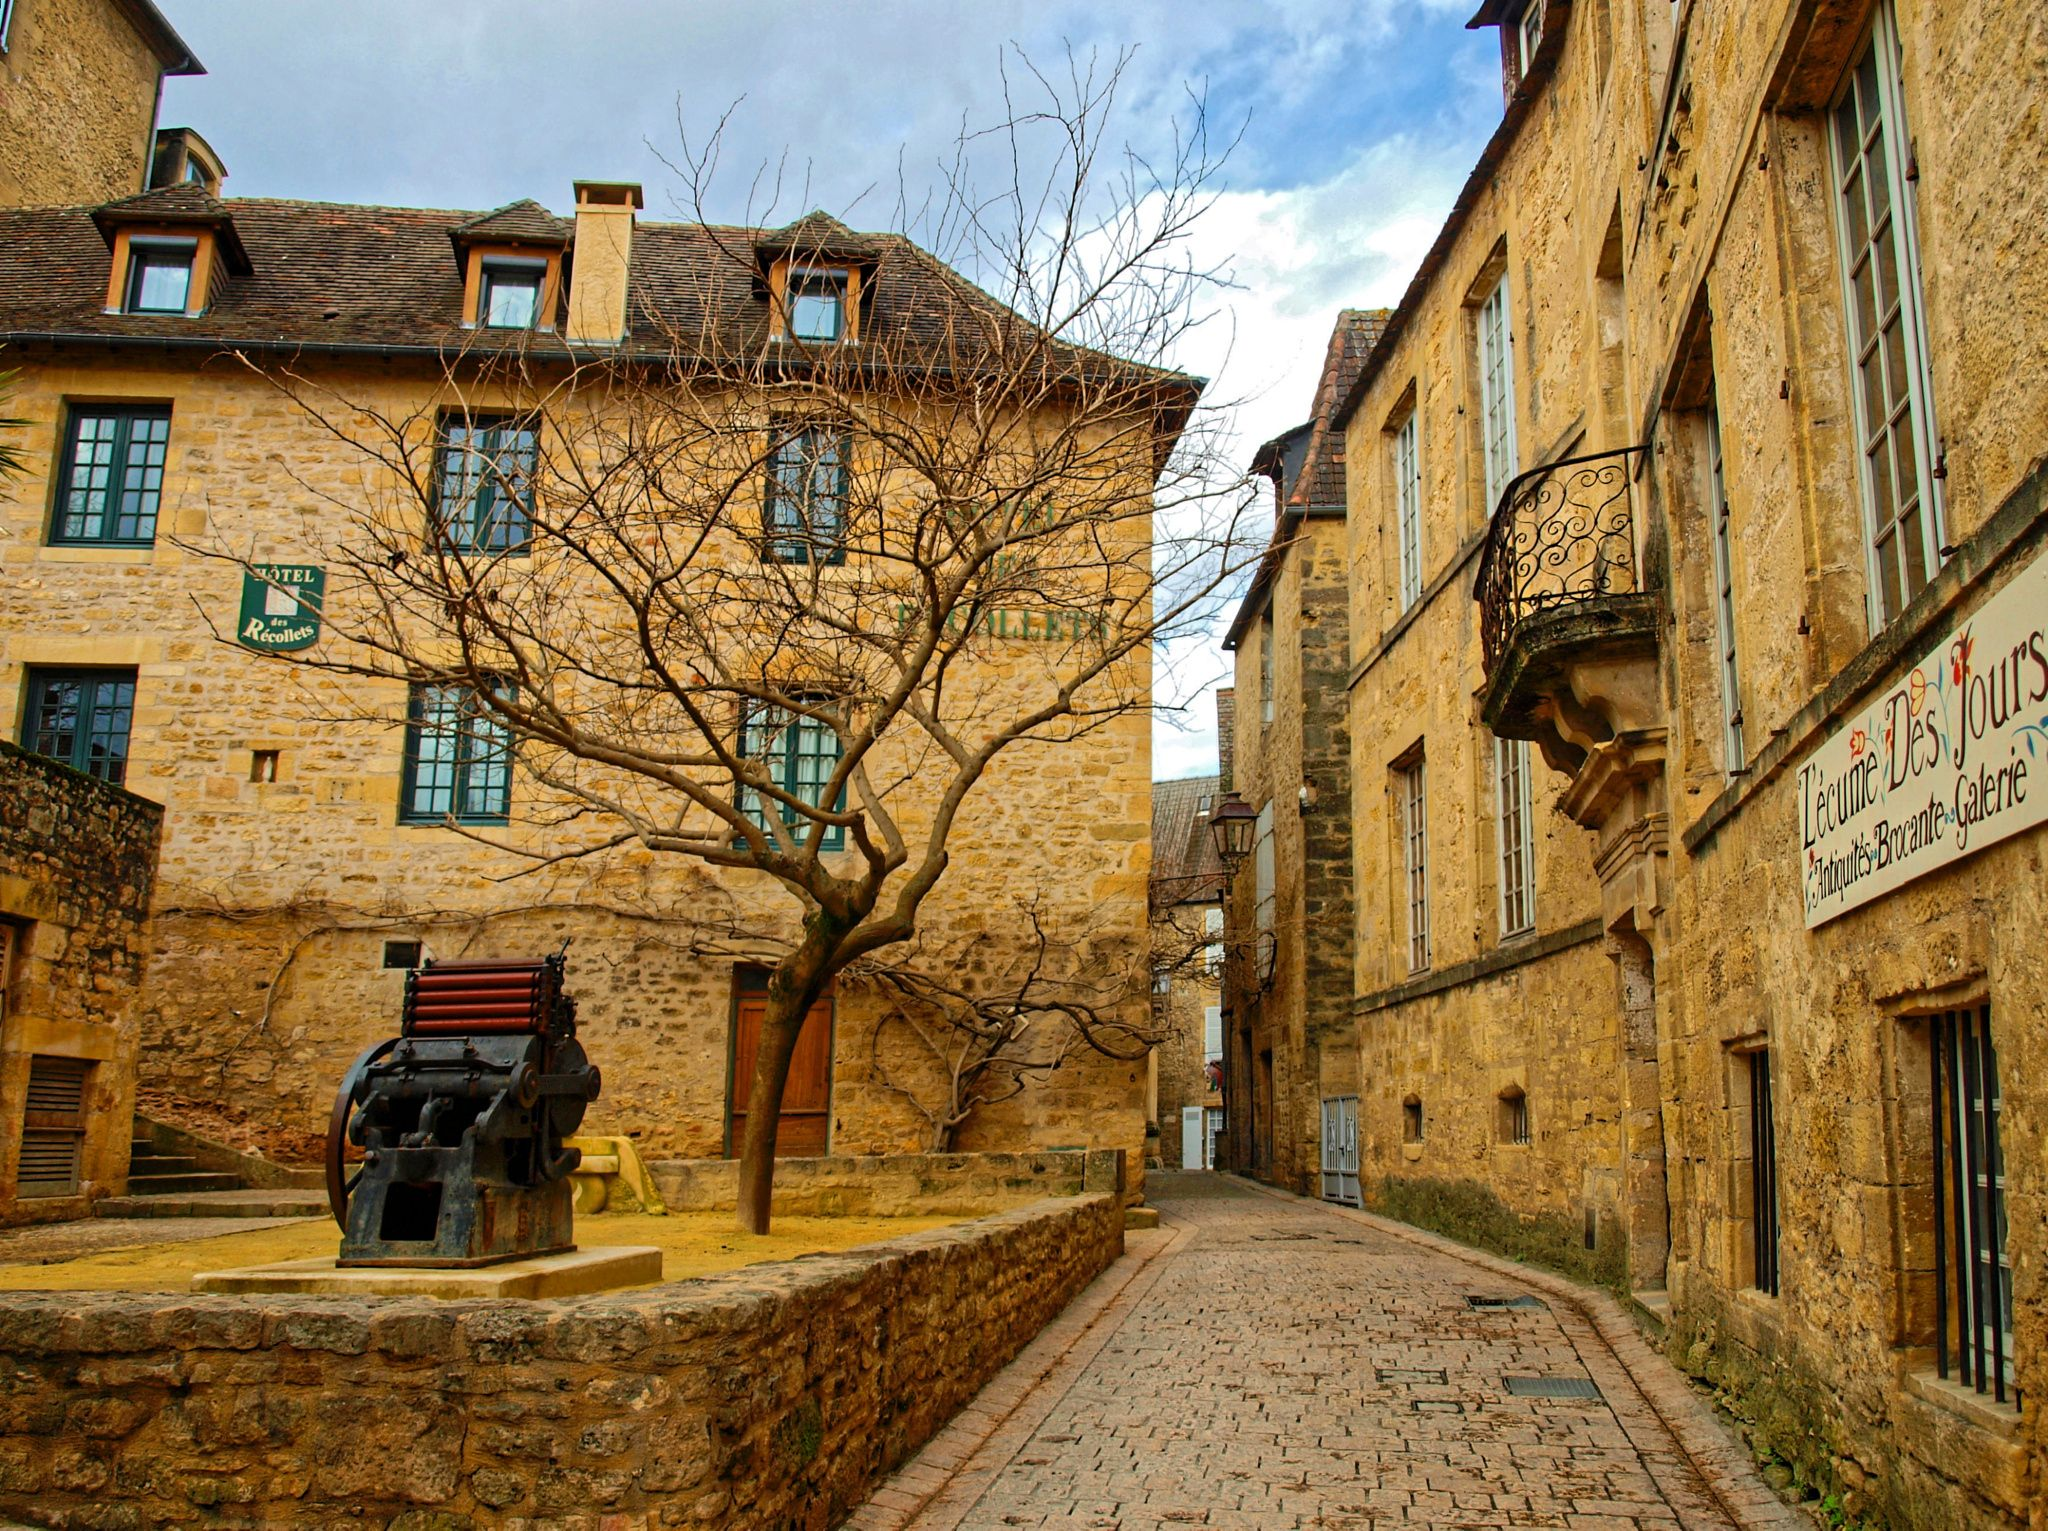 Sarlat-la-Canéda - One of the more attractive medievale commune in province of Dordognein South-western France. - image:  Marc Benedetti